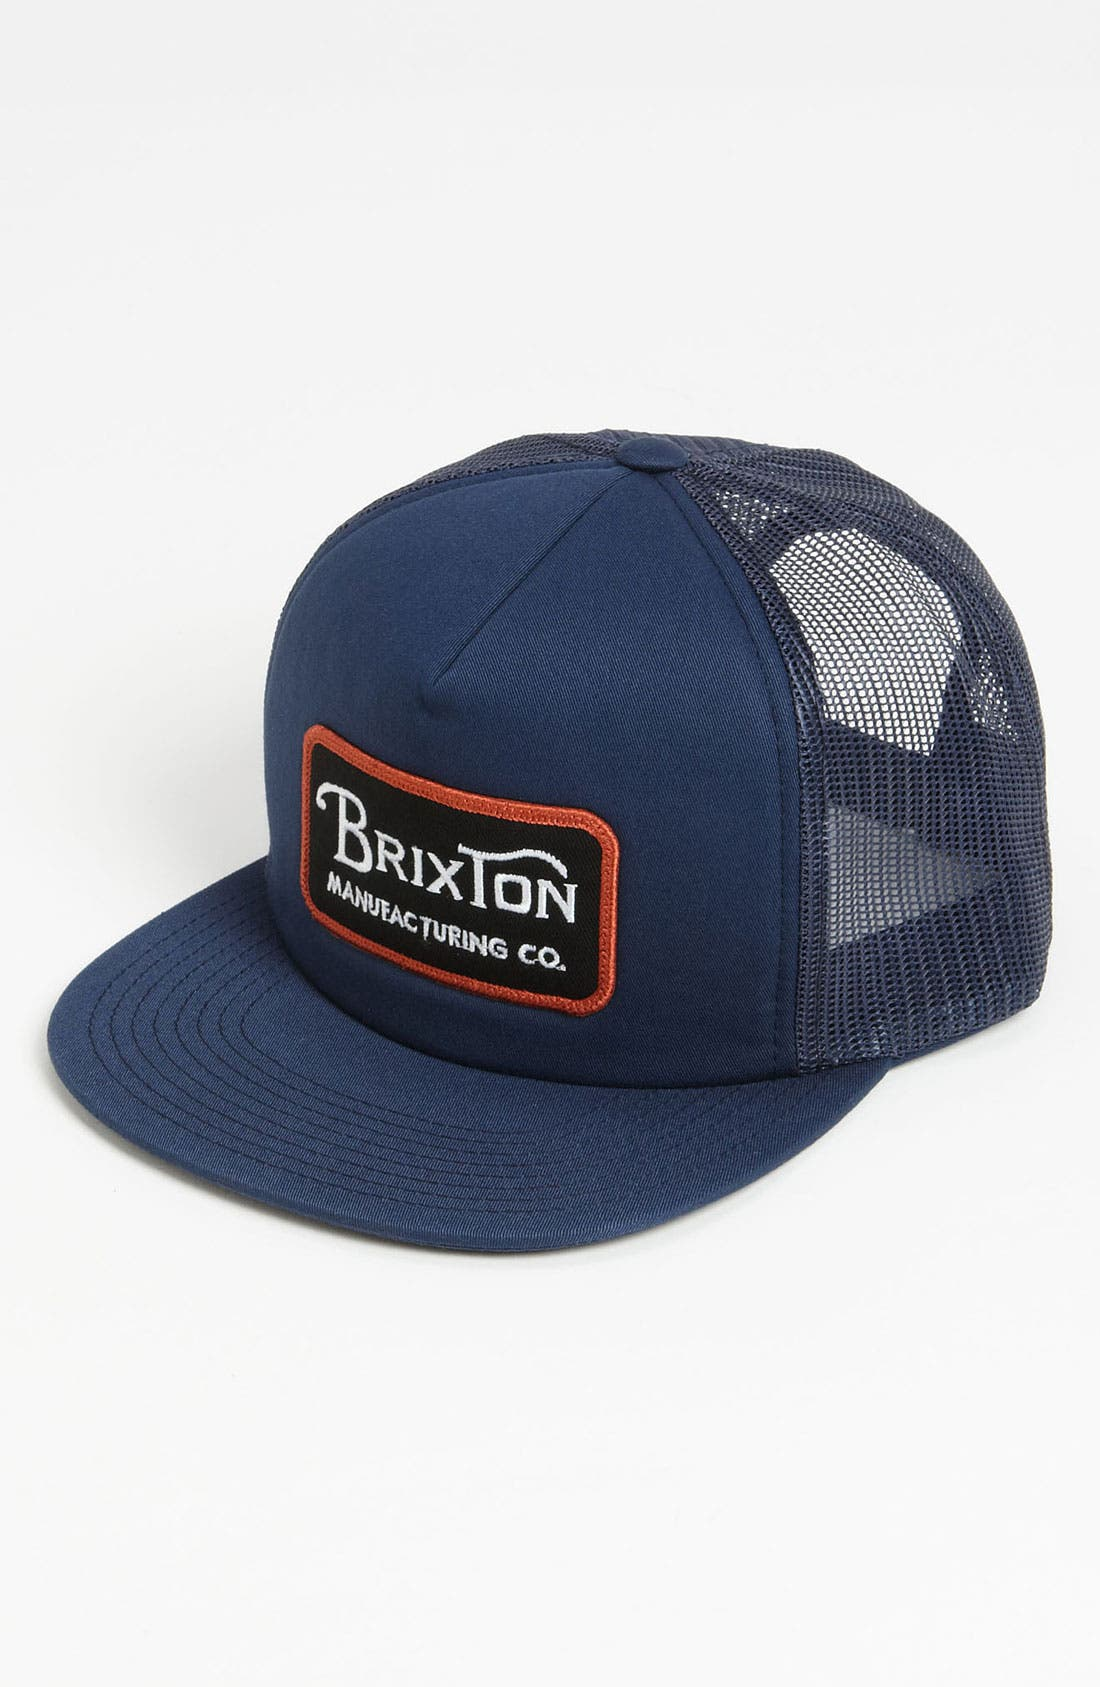 Alternate Image 1 Selected - Brixton 'Route' Trucker Hat